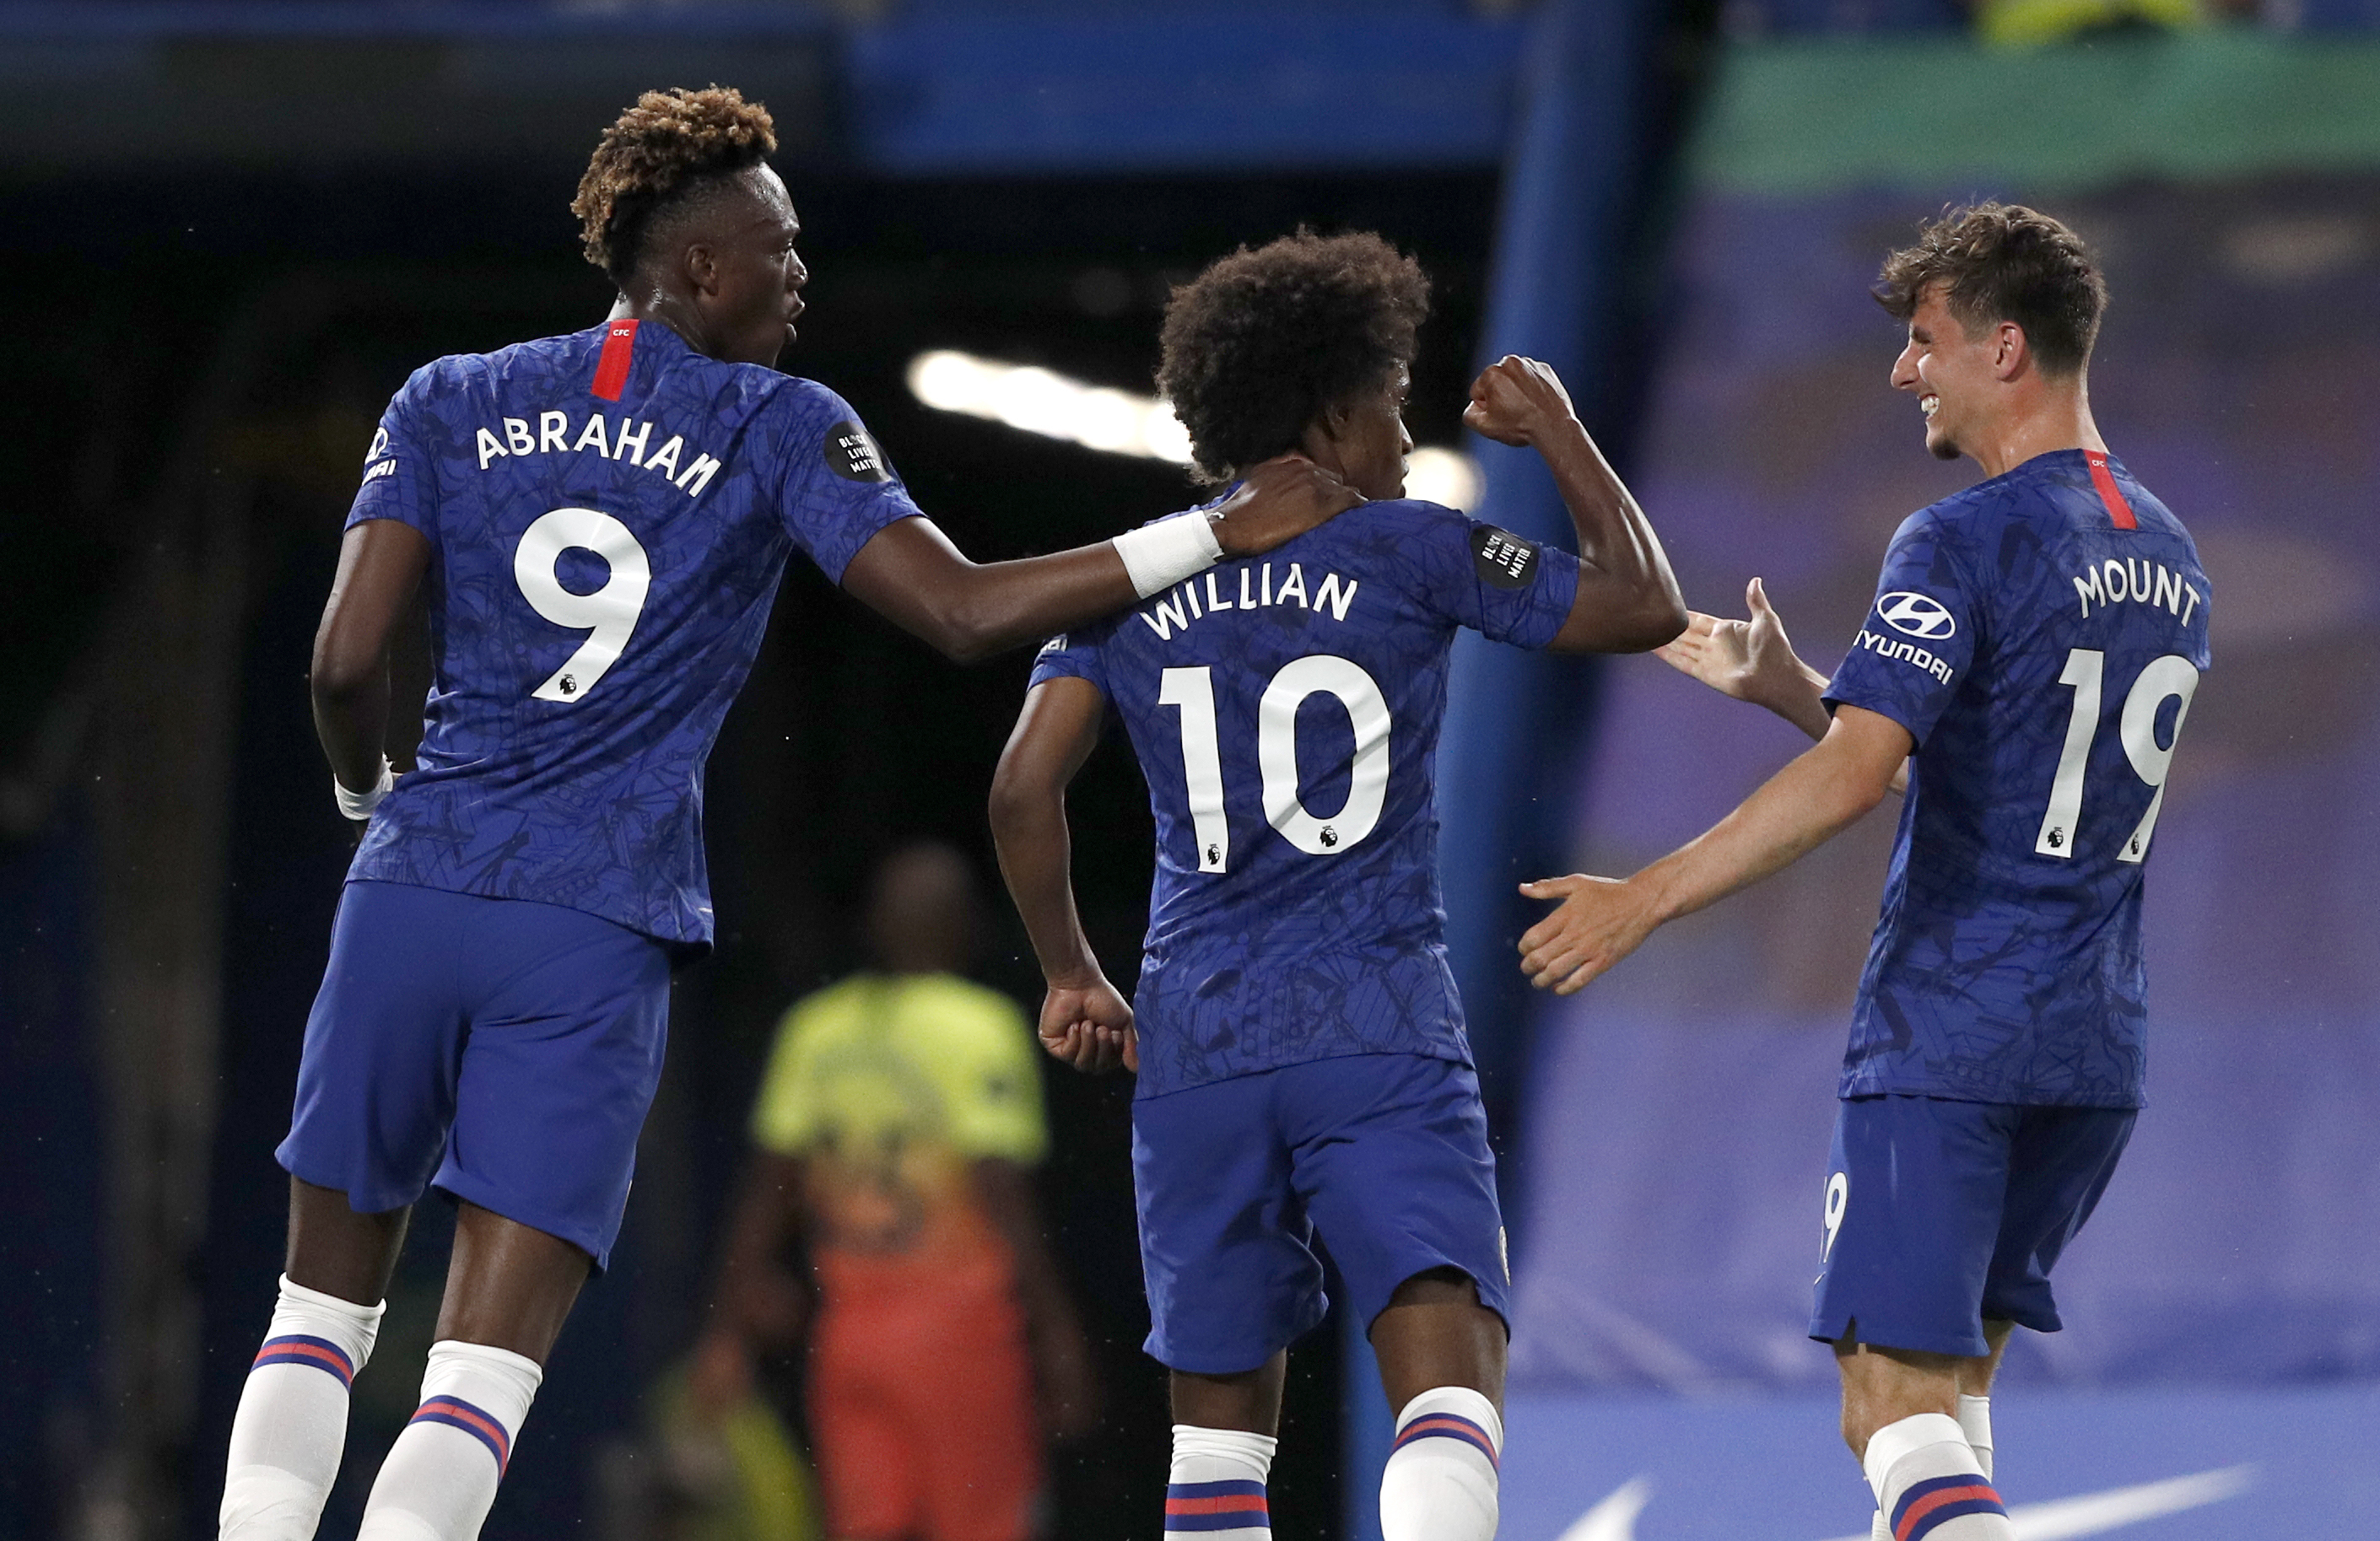 watch chelsea vs newcastle live for free